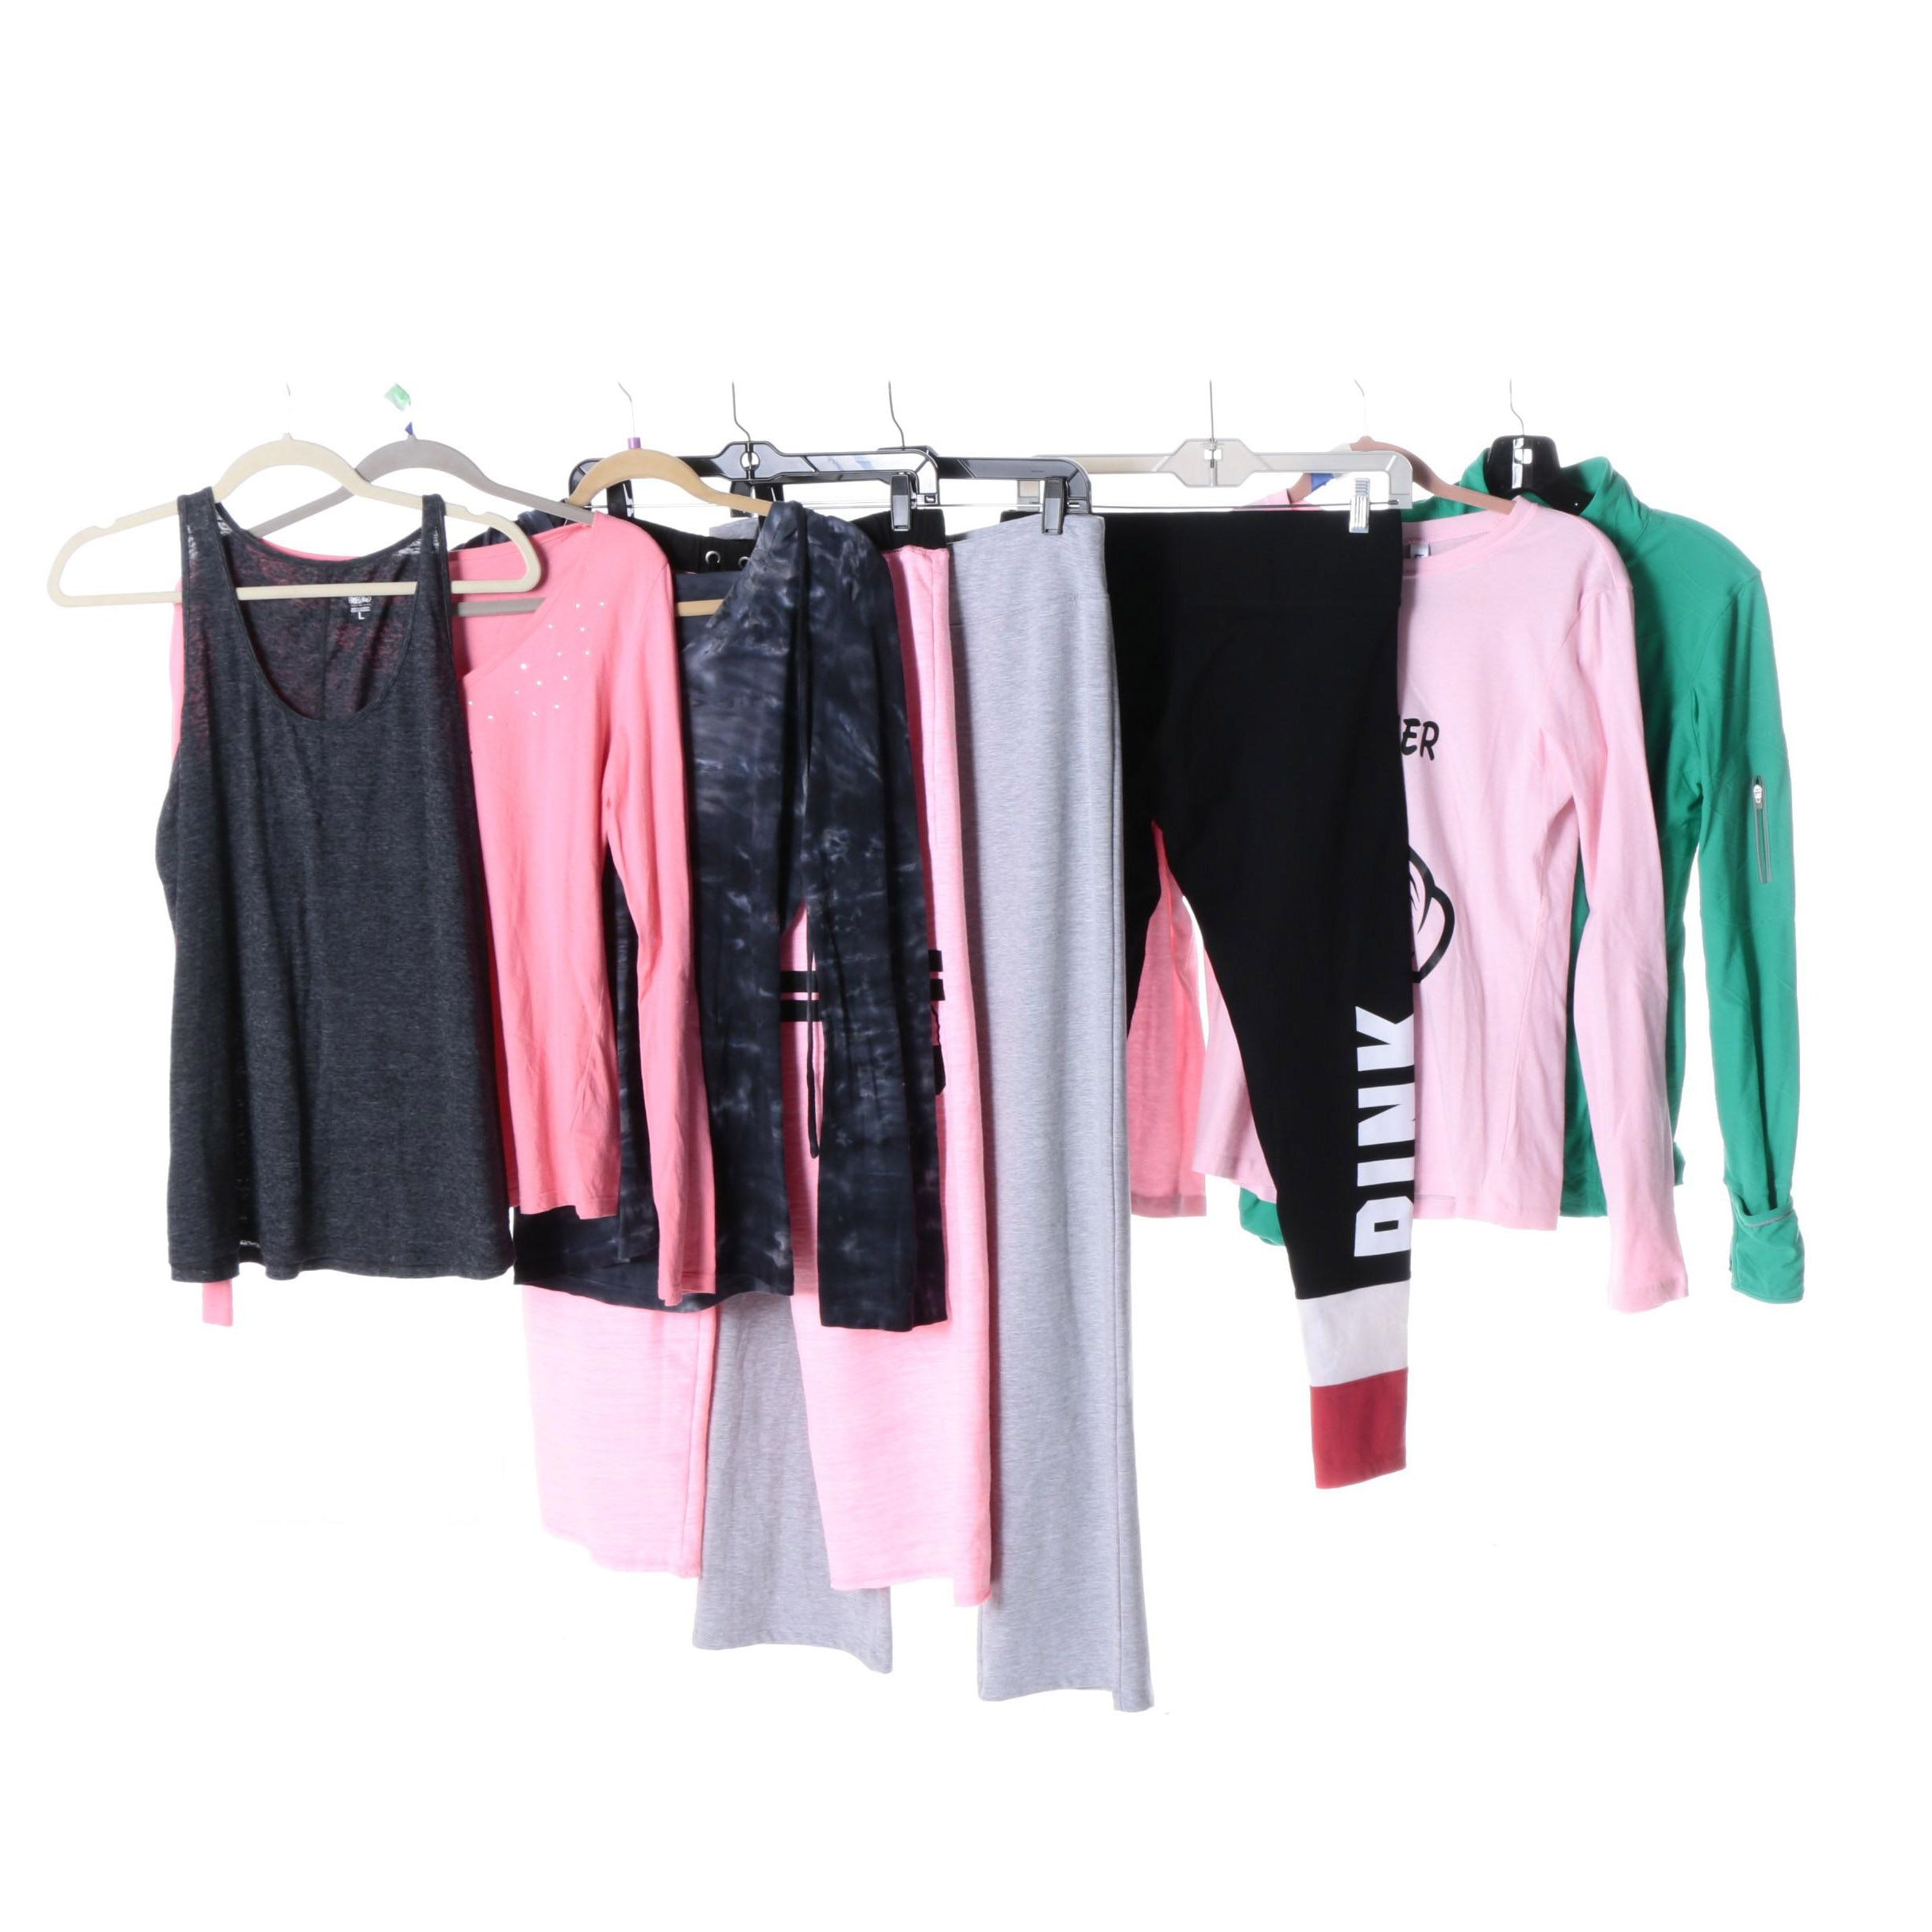 Women's Activewear Including Pink, Kirkland Signature and Mossimo